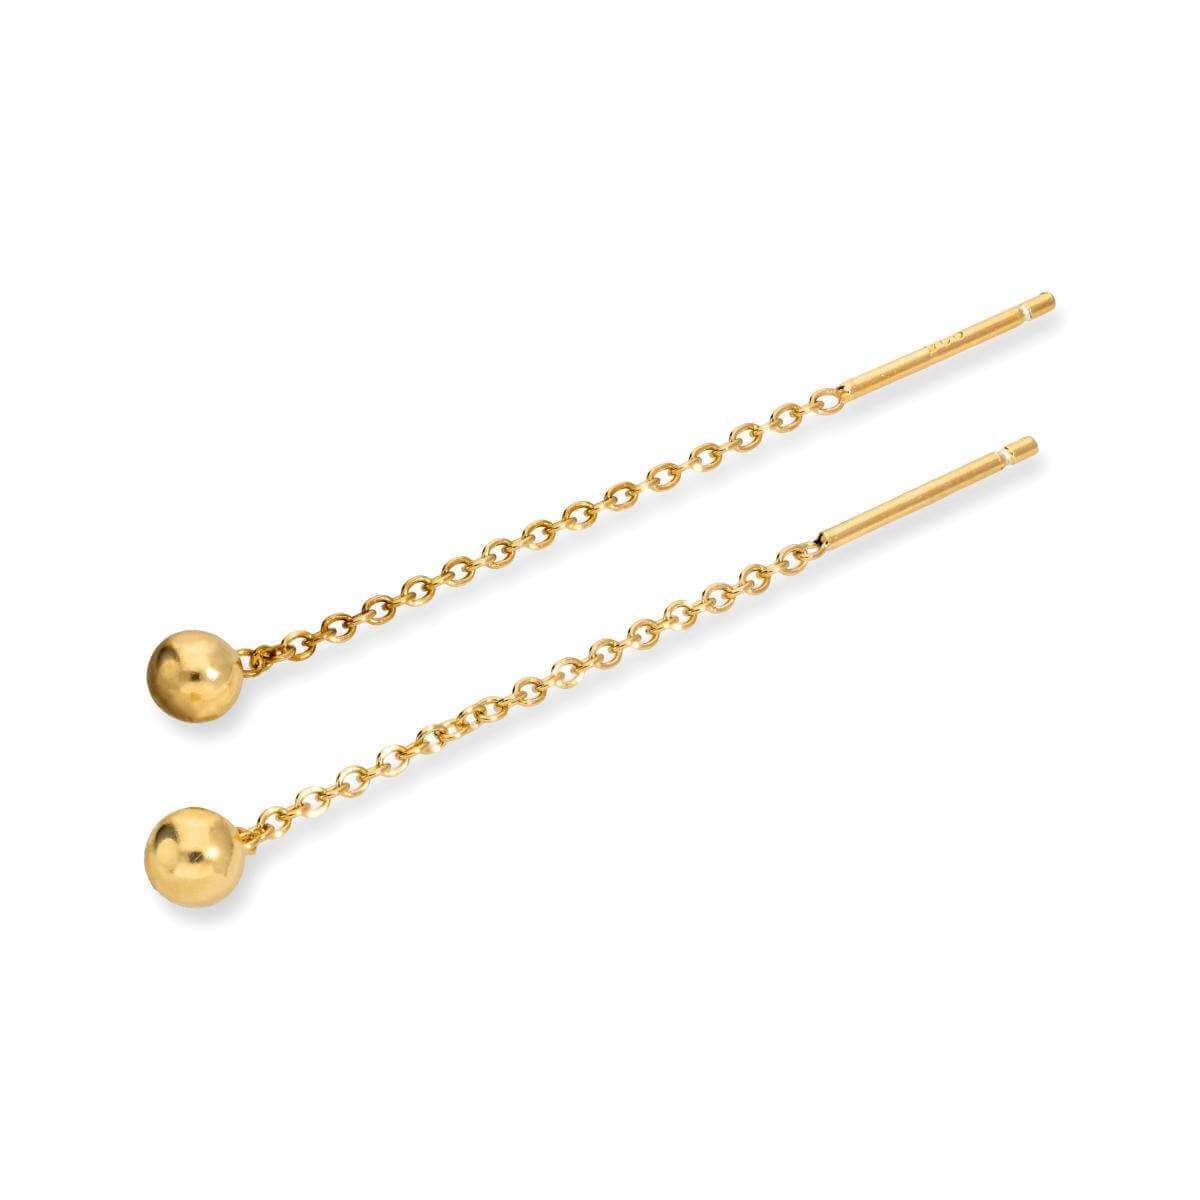 Yellow Gold Plated Sterling Silver 4mm Ball Pull Through Earrings